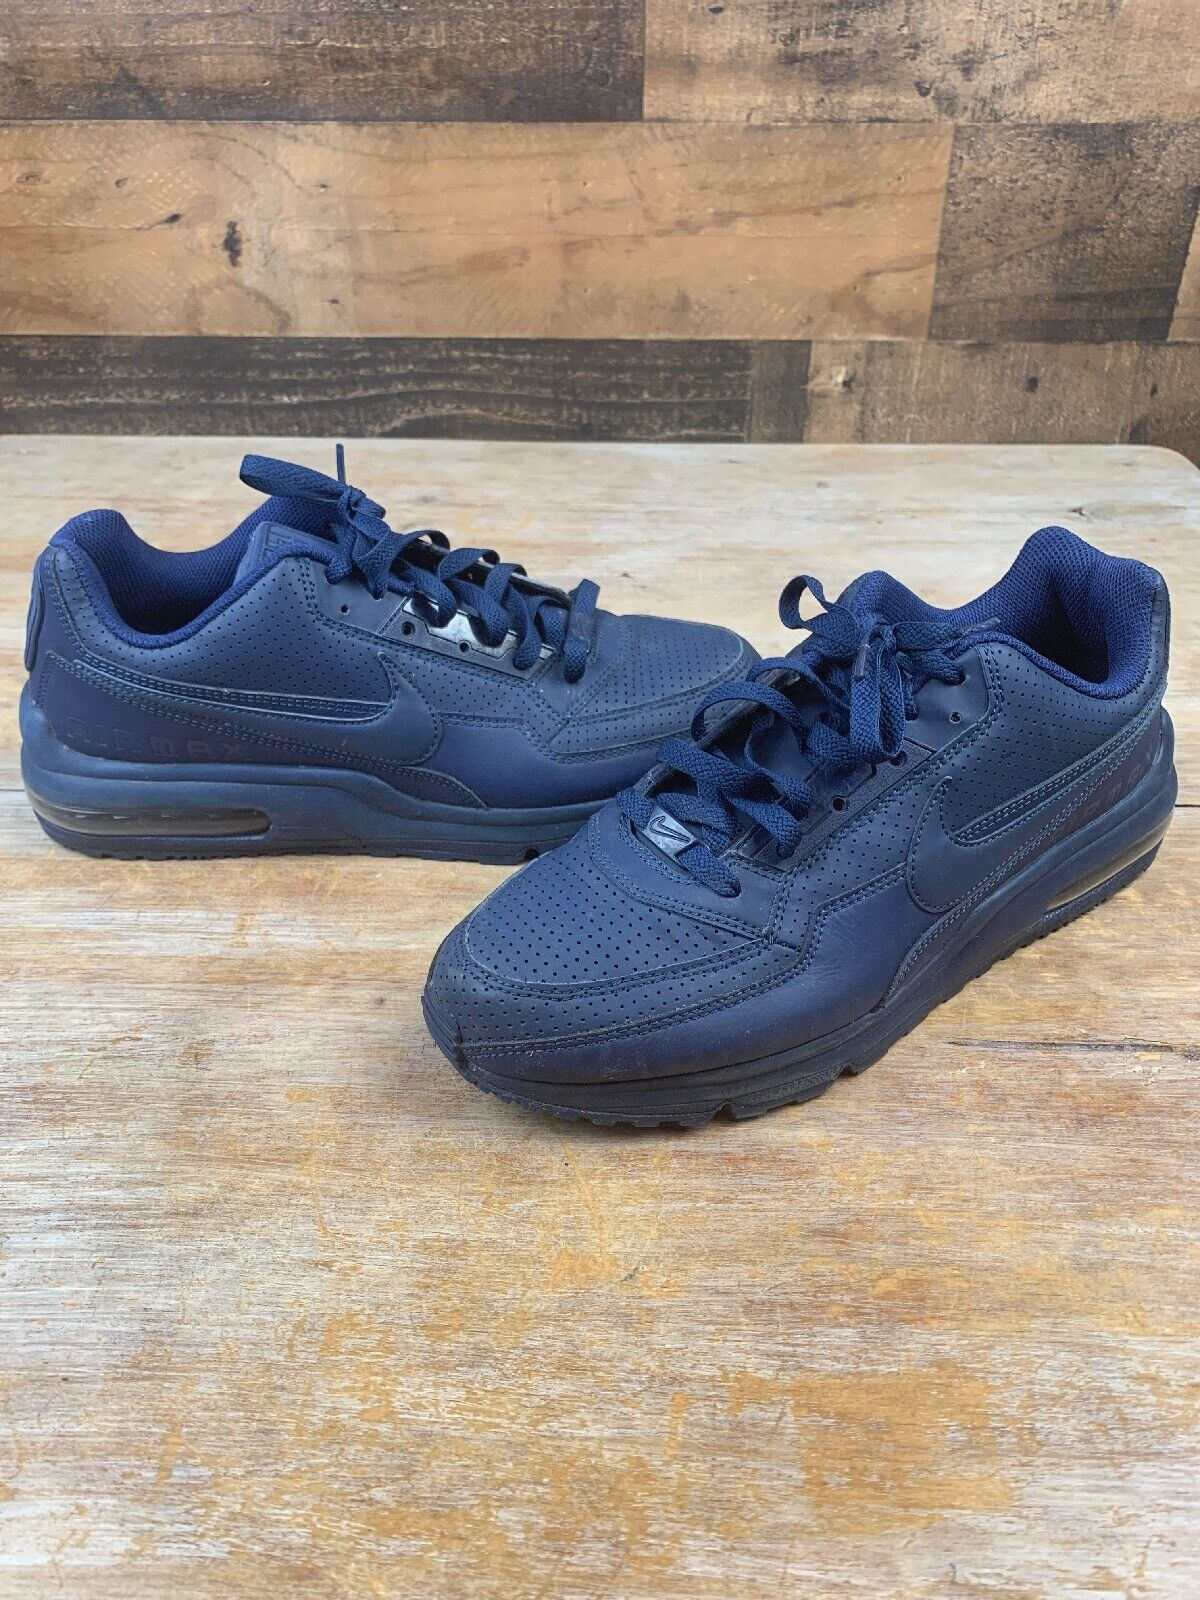 Nike Wmns Air Max 1 Ultra Lotc Qs & New York 747105 001 Shoes Womens Outlet